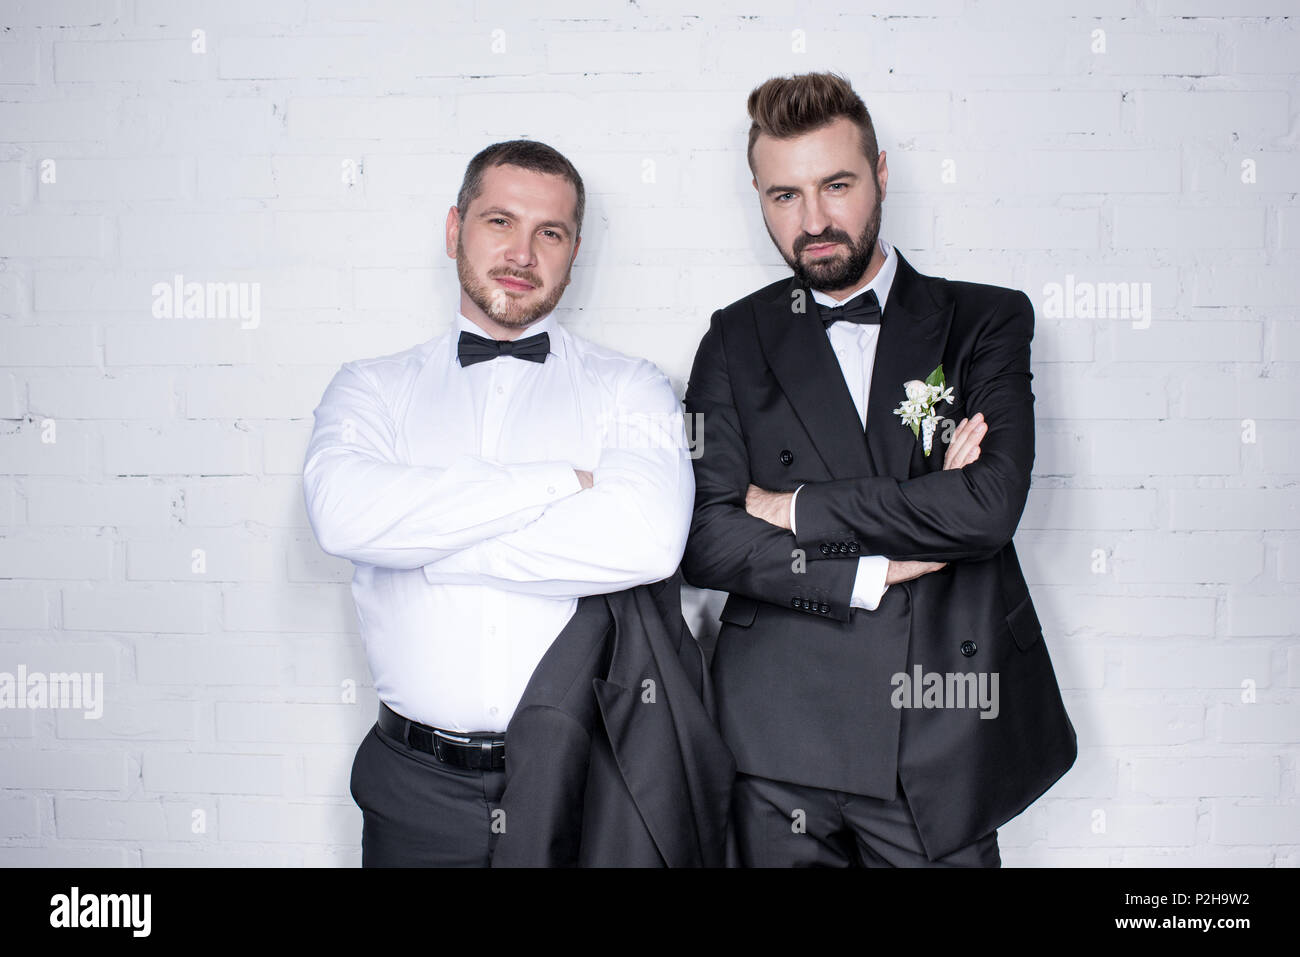 Couple of grooms in tuxedos looking at camera and posing with arms crossed - Stock Image